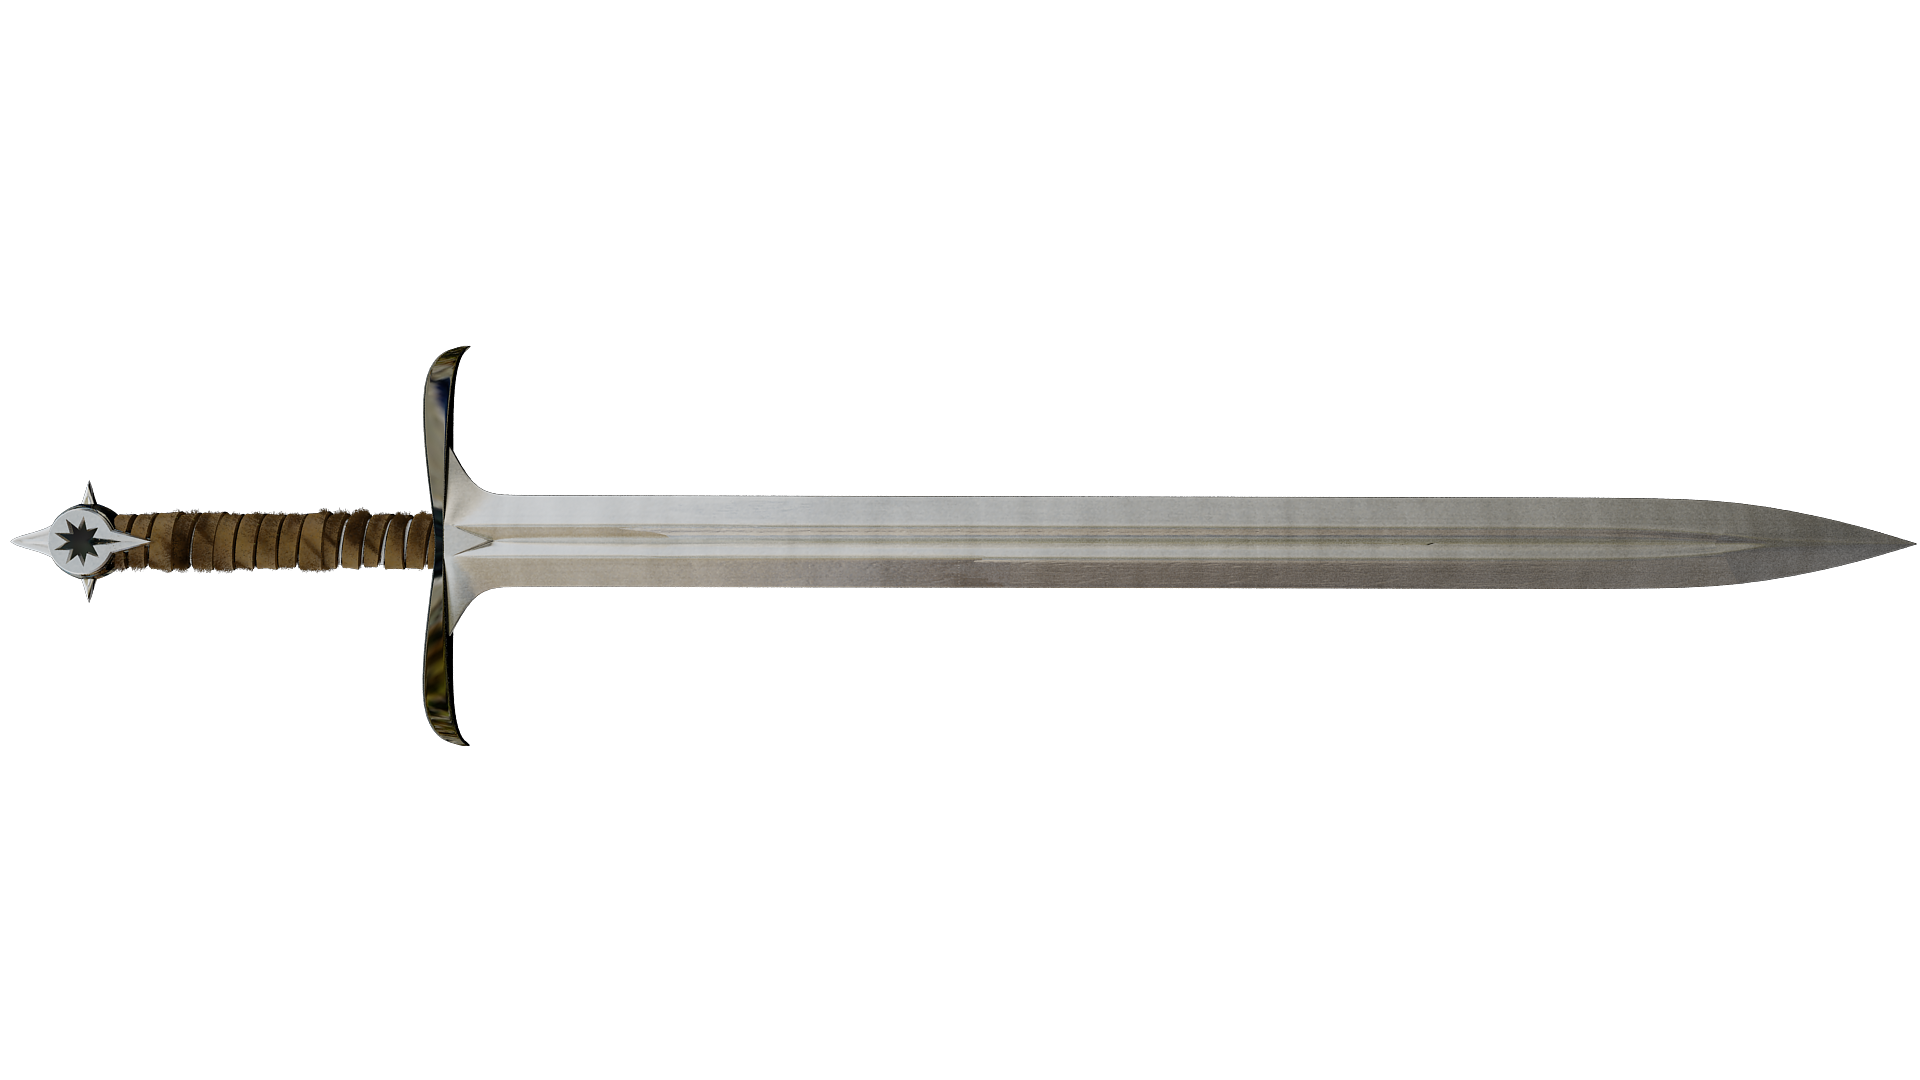 Topic du matin - Page 6 Sword-hd-png-sword-png-image-1920